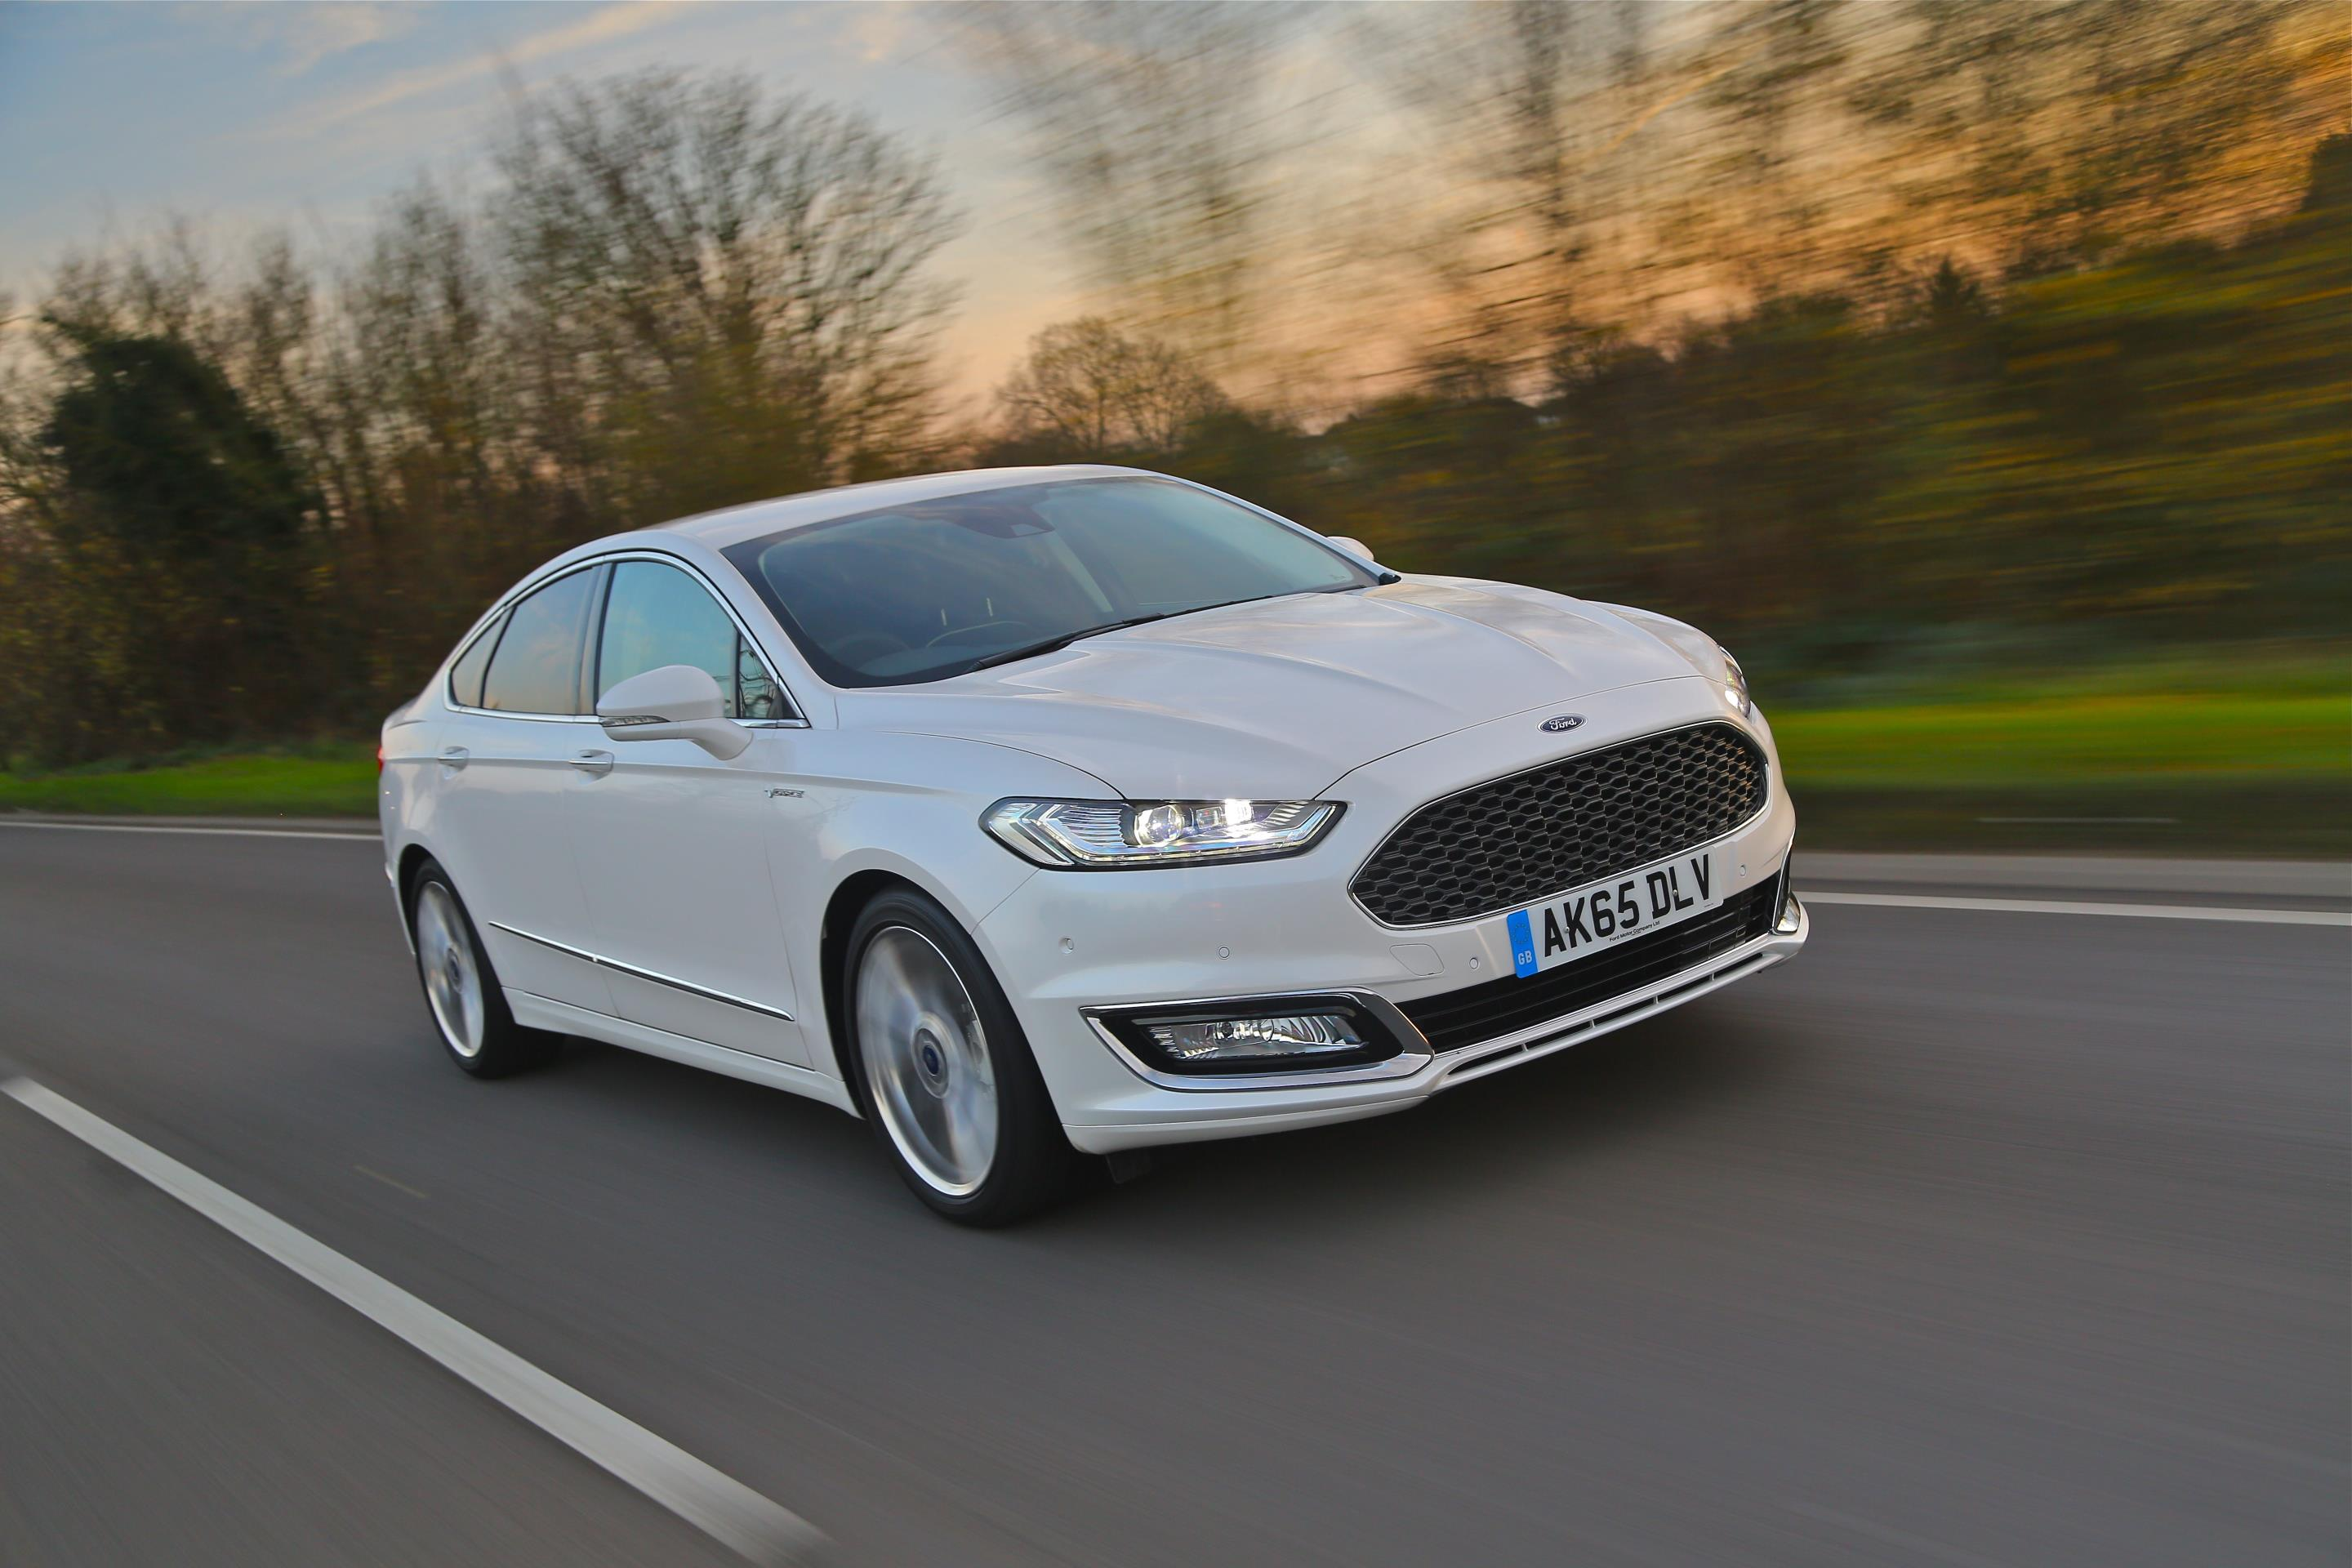 ford_Mondeo Vignale (42).jpg